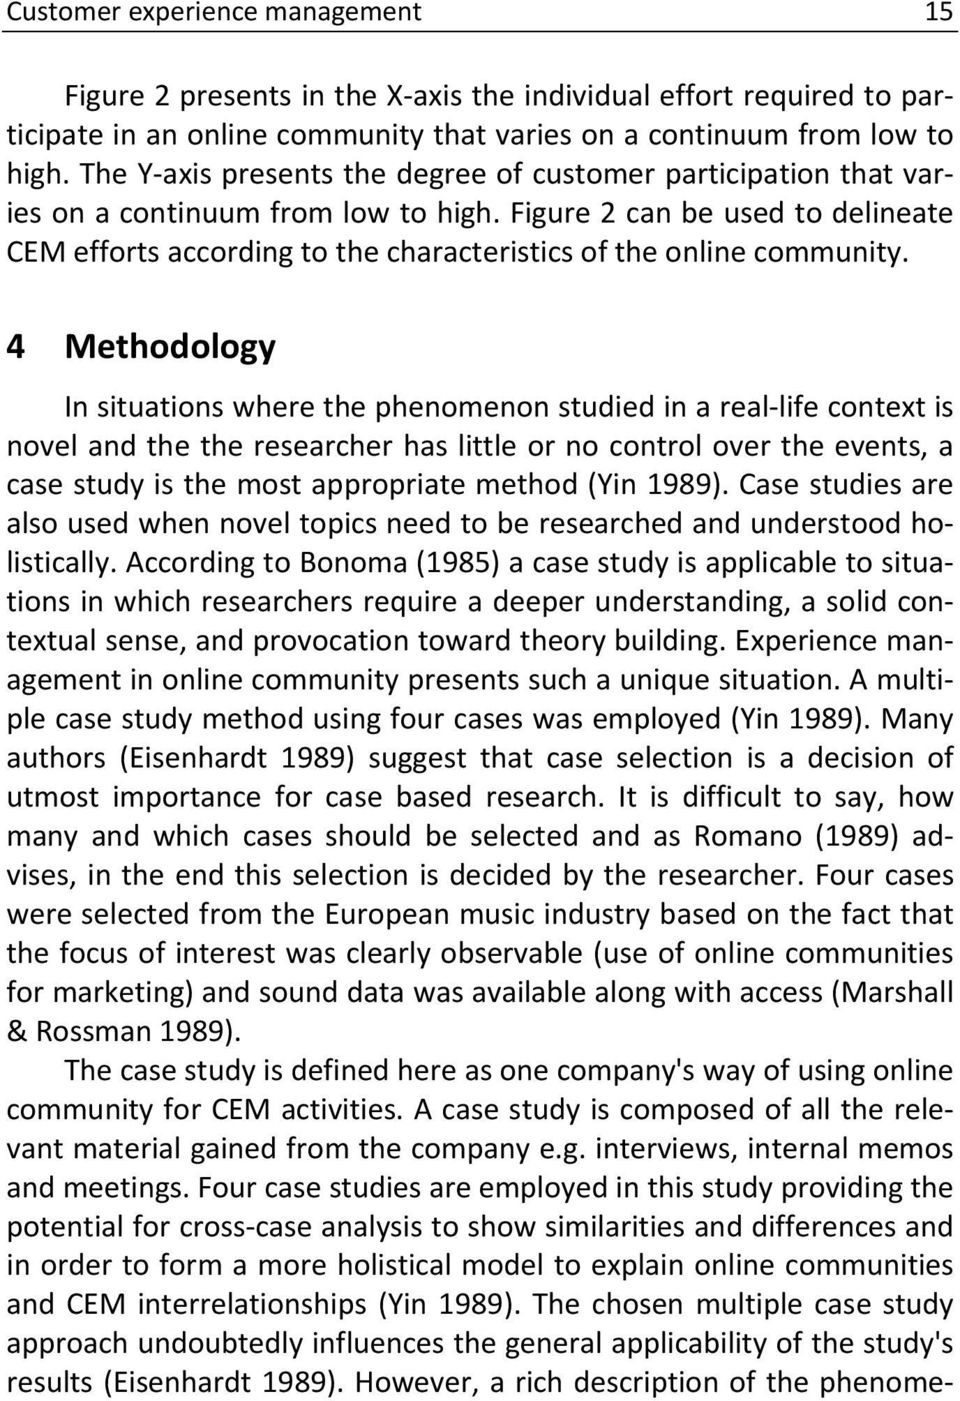 Figure 2 can be used to delineate CEM efforts according to the characteristics of the online community.